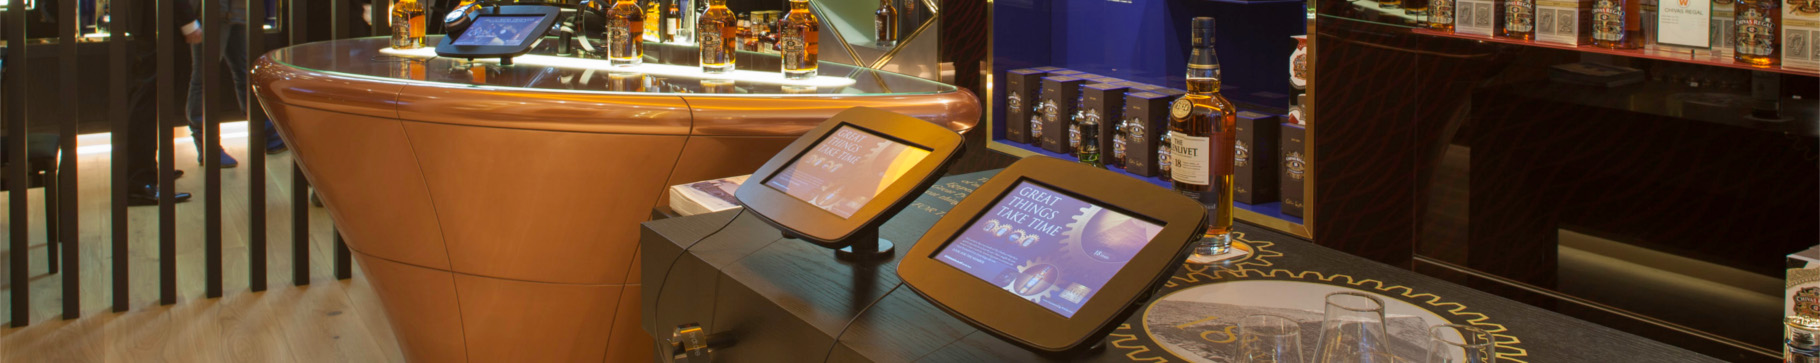 Thinking mobile: how should portable technology be integrated into stores?